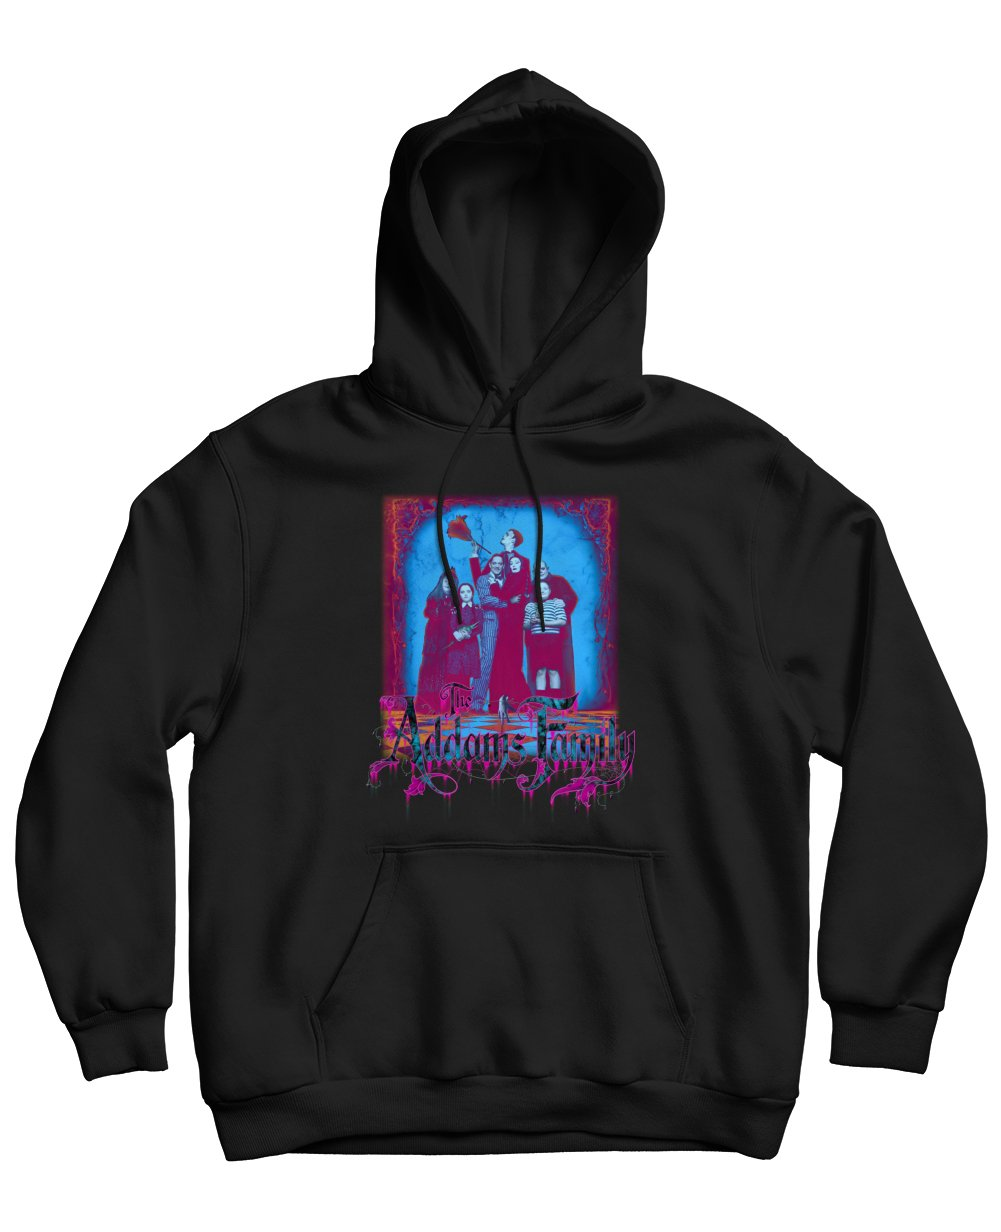 The Addams Family Print Hoodies in Black